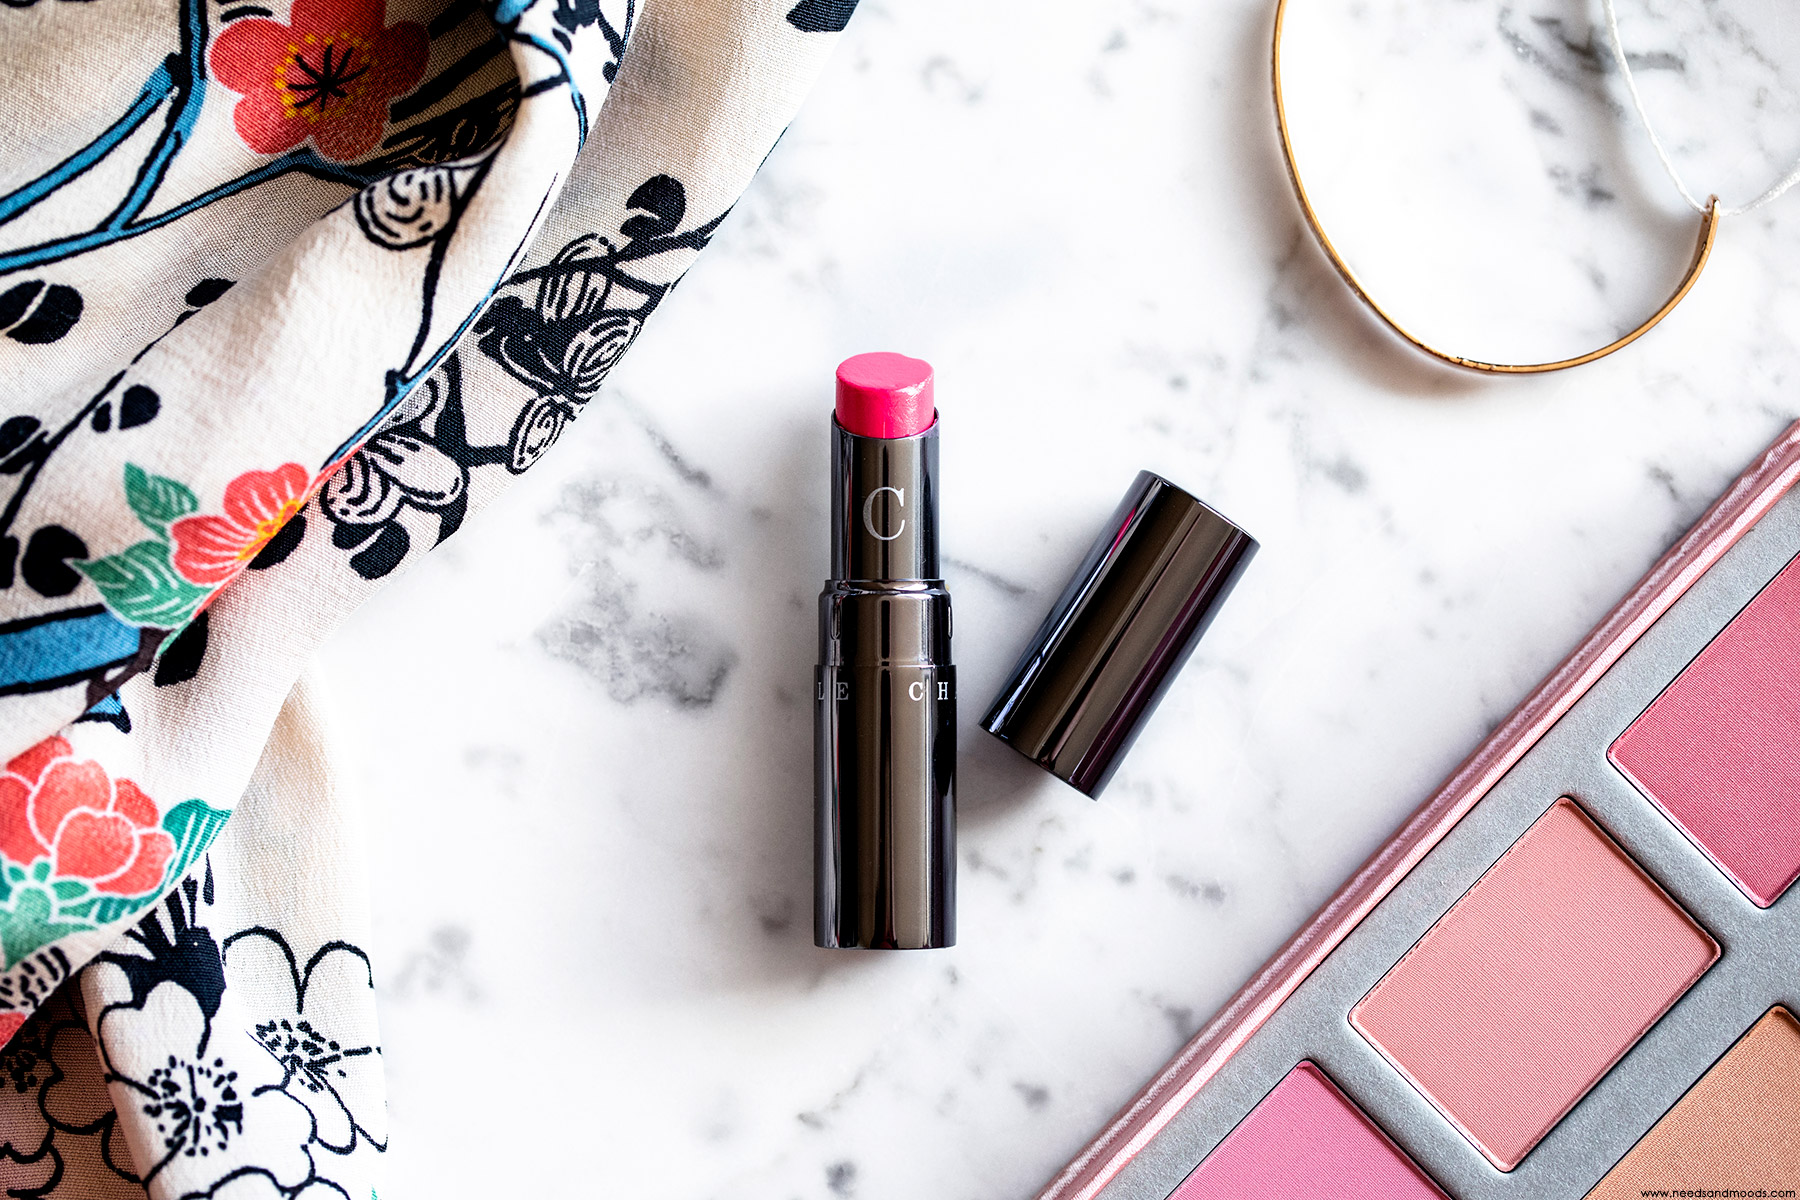 chantecaille lip chic avis